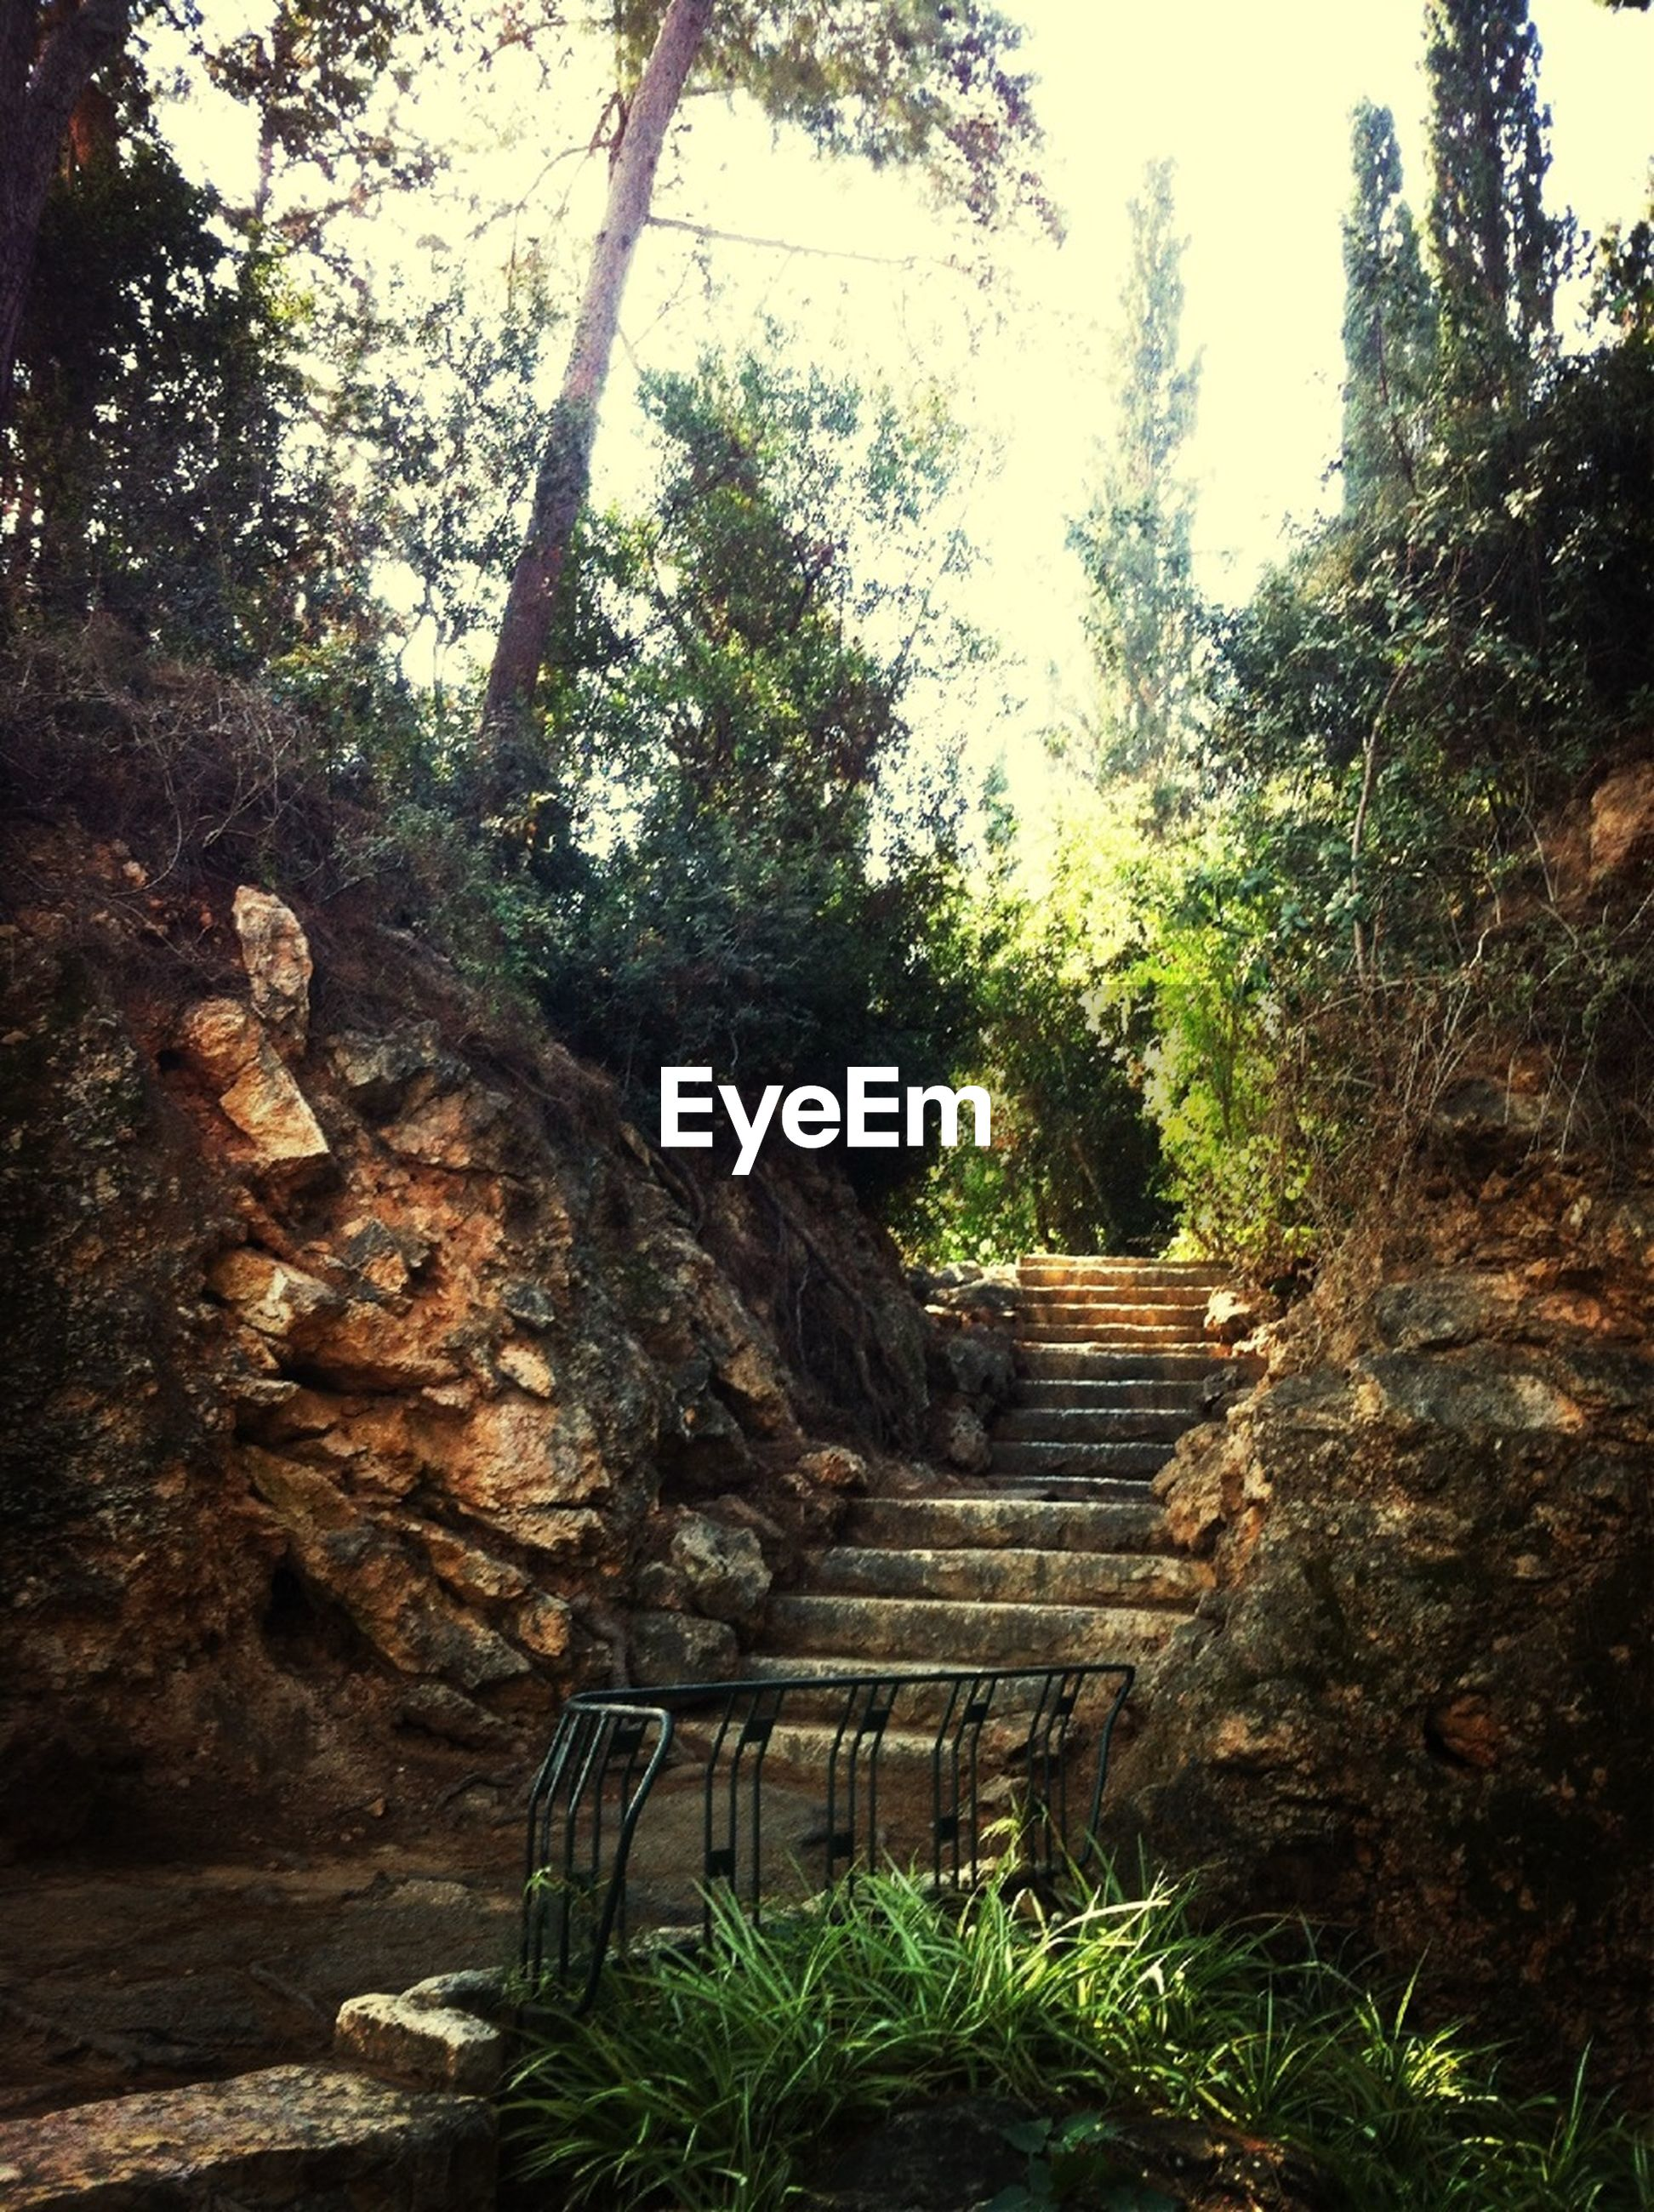 tree, steps, forest, tranquility, rock - object, nature, steps and staircases, tranquil scene, growth, staircase, plant, the way forward, non-urban scene, beauty in nature, day, wood - material, outdoors, scenics, tree trunk, non urban scene